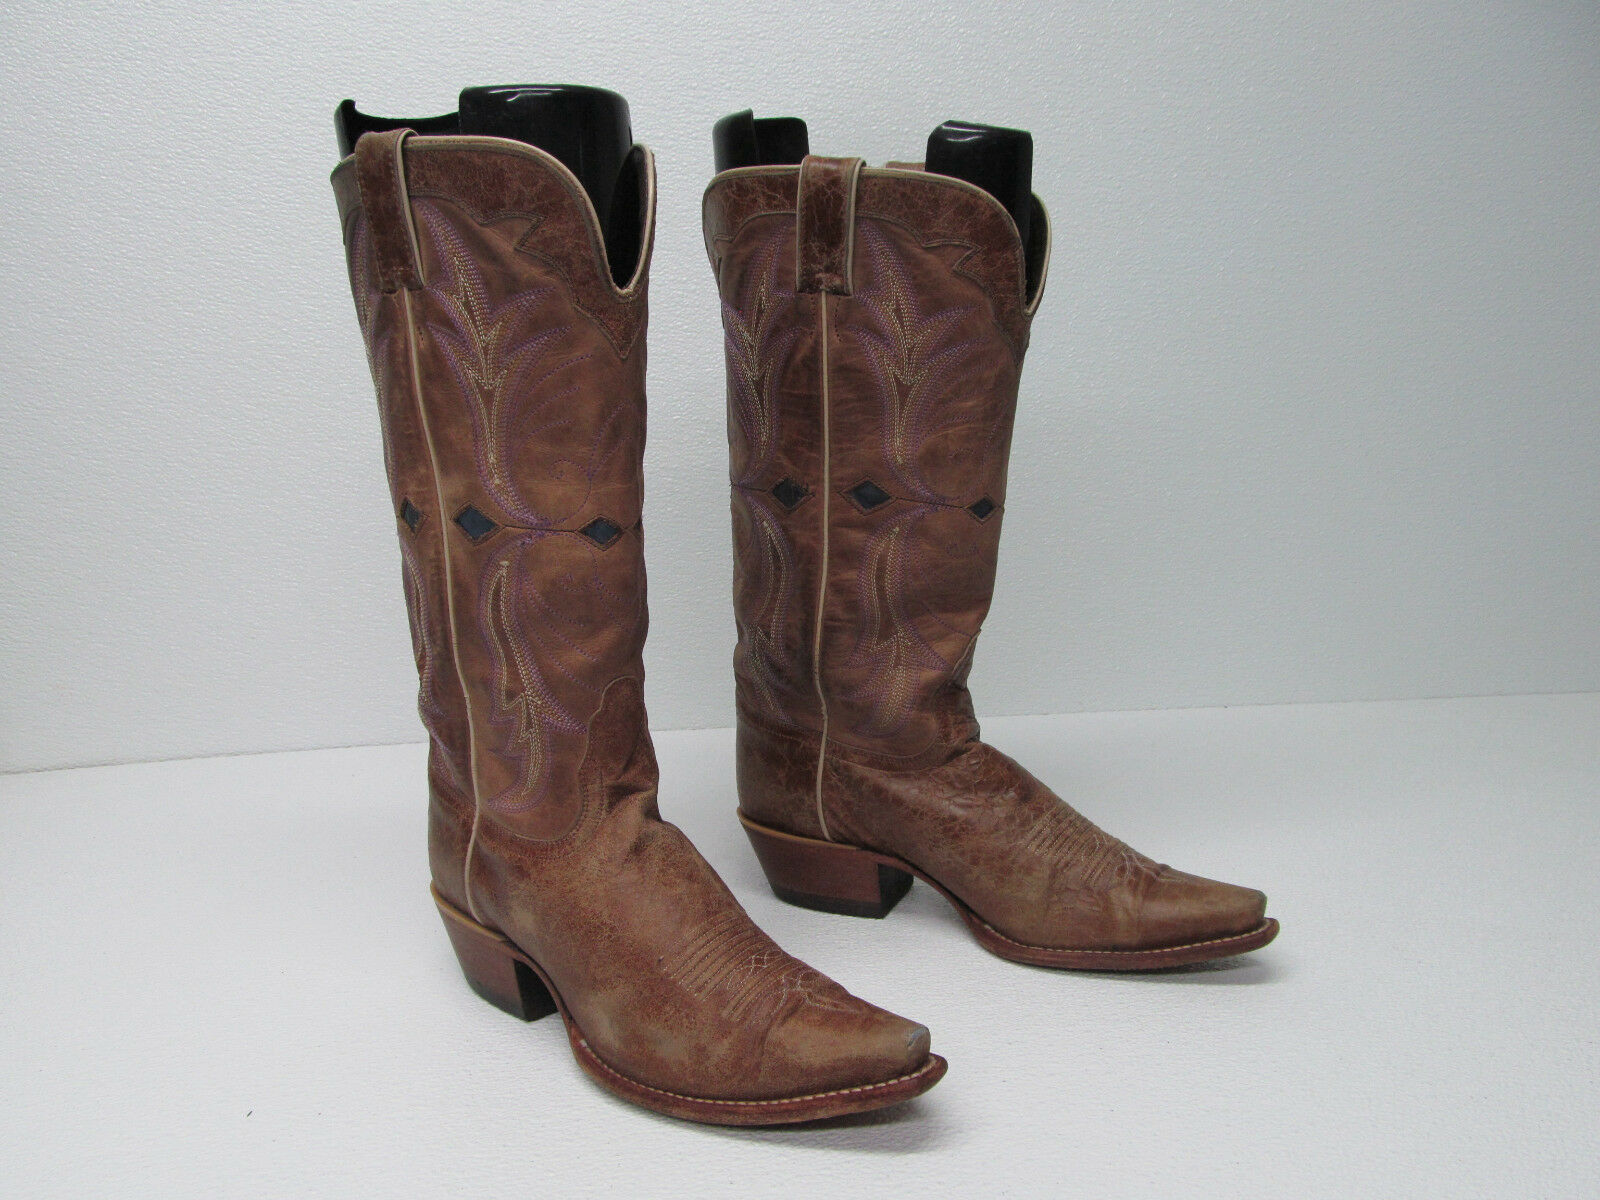 NOCONA Stiefel NL5300 BROWN CRACKLE GOAT LEATHER 9B WESTERN COWGIRL Stiefel Damenschuhe 9B LEATHER de76b6